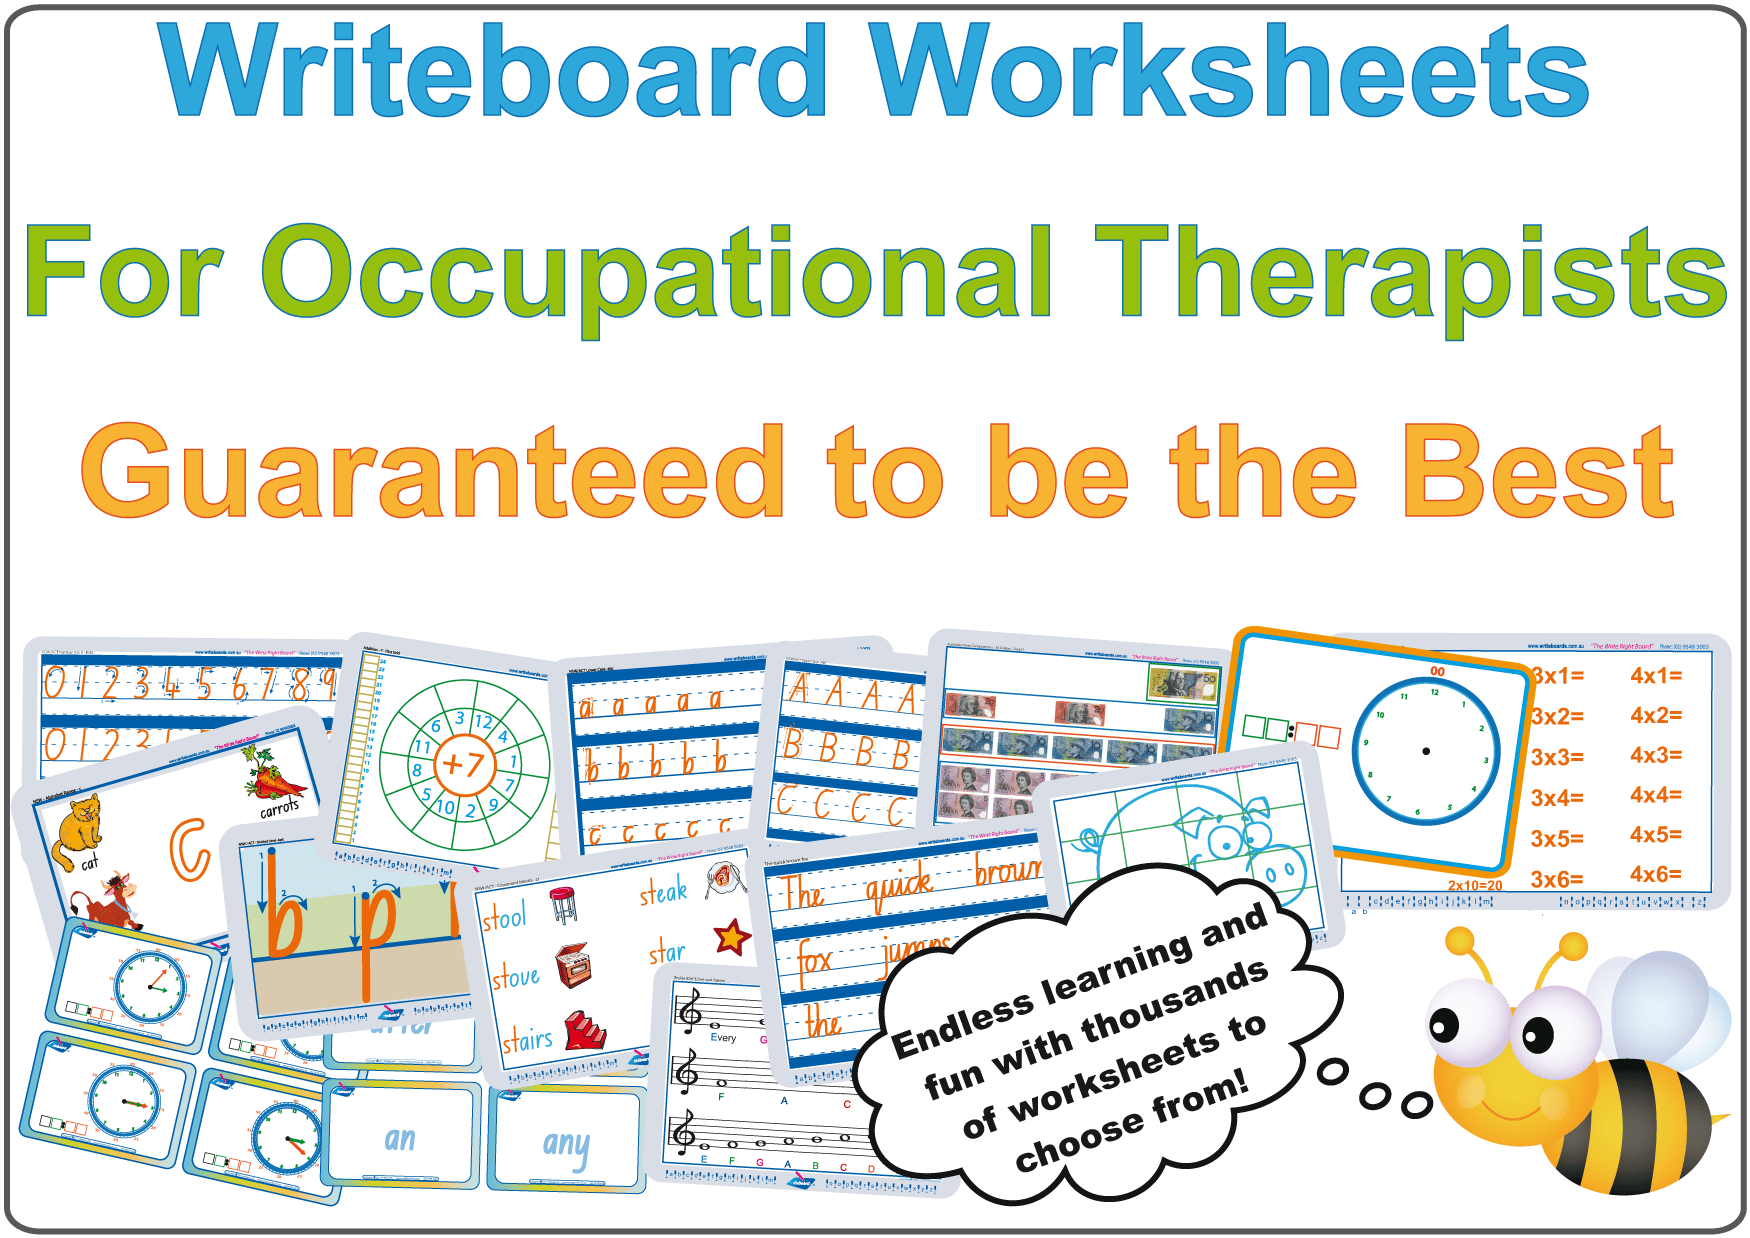 worksheets for occupational therapists writeboards children s writing board. Black Bedroom Furniture Sets. Home Design Ideas